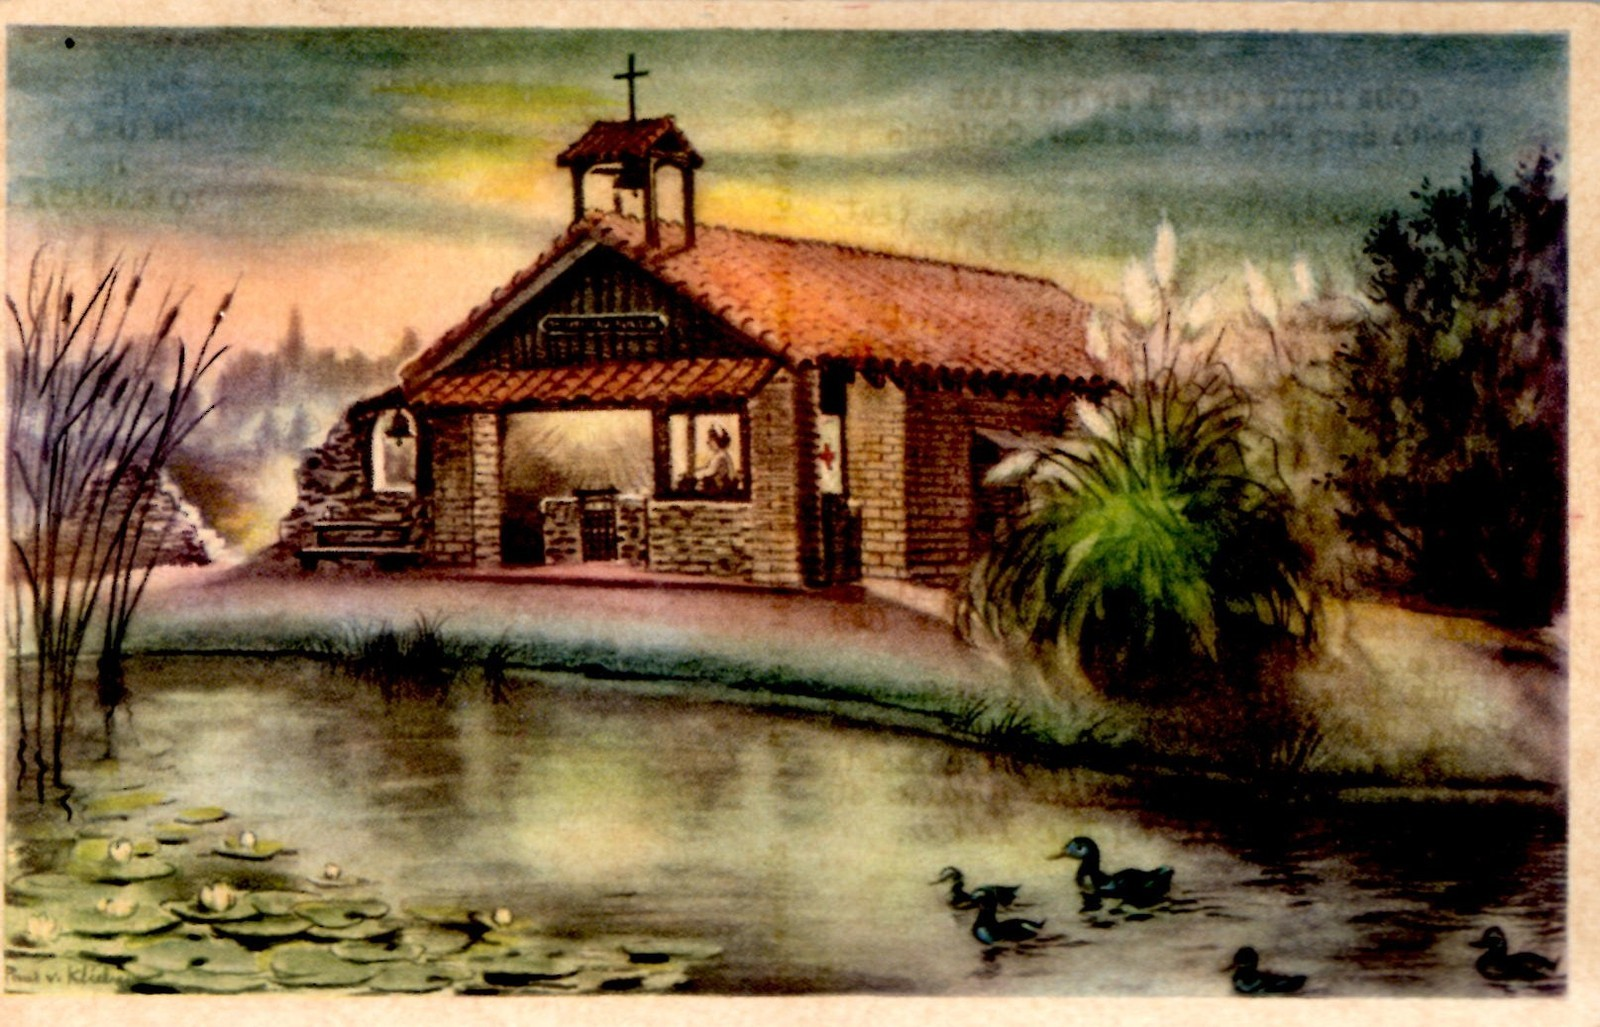 Our Little Chapel by the Lake, postcard, Knott's Berry Farm, circa 1944